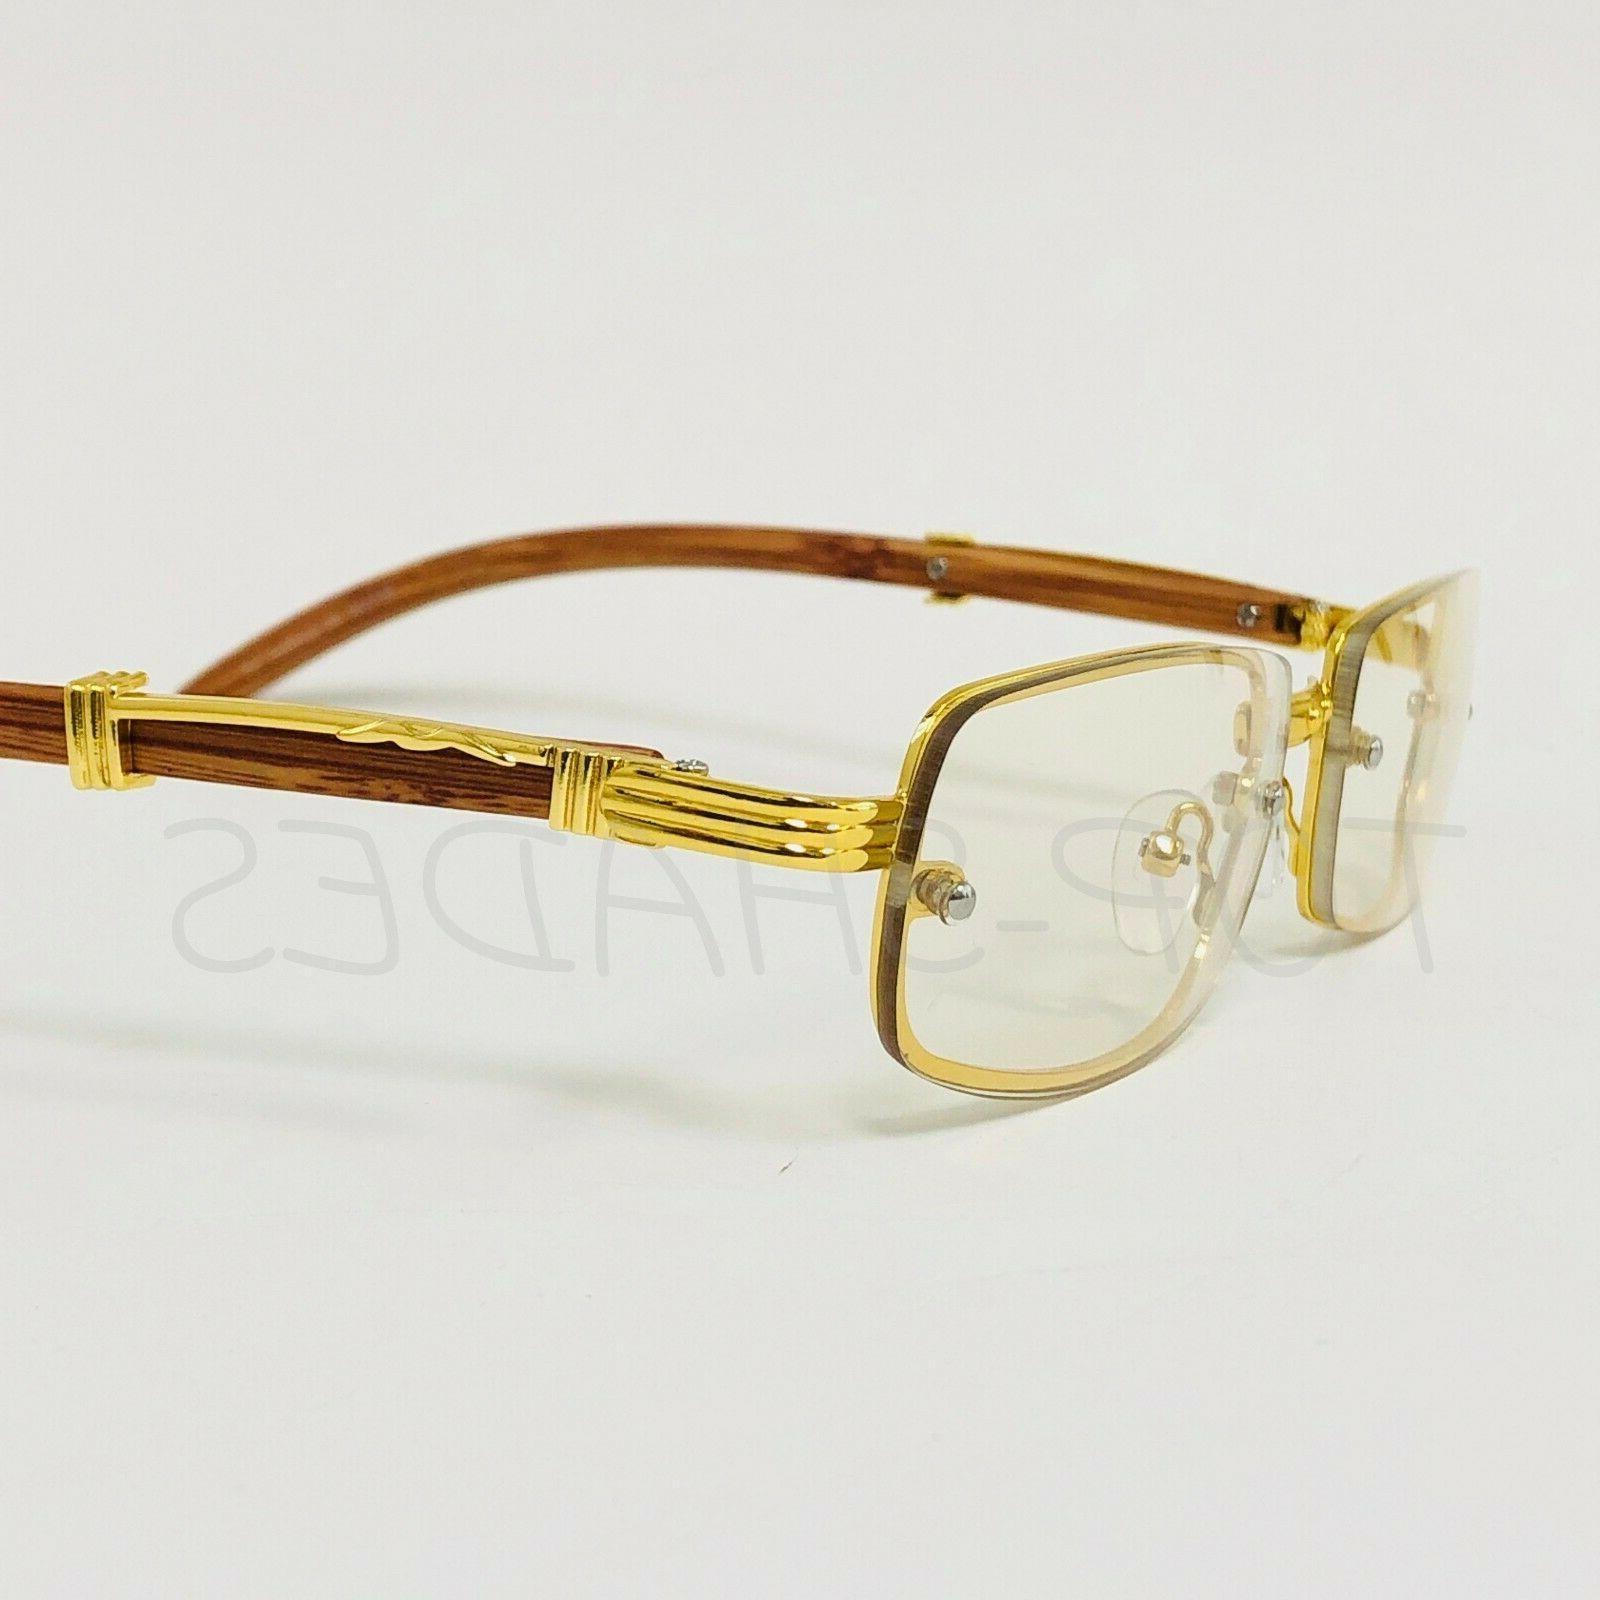 Sophisticated Classy Eye Glasses Clear Lens Gold & Wood Frame